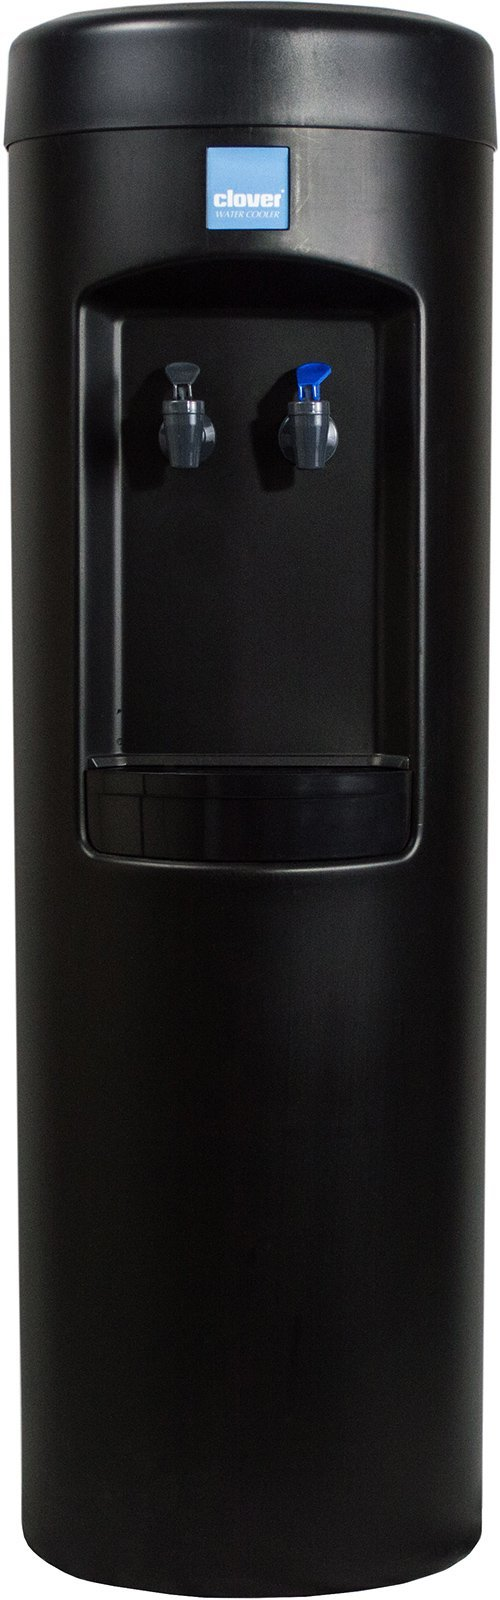 Clover B7B Water Dispenser -Room Temperature and Cold, Bottleless With Install Kit, Conversion Kit -Black